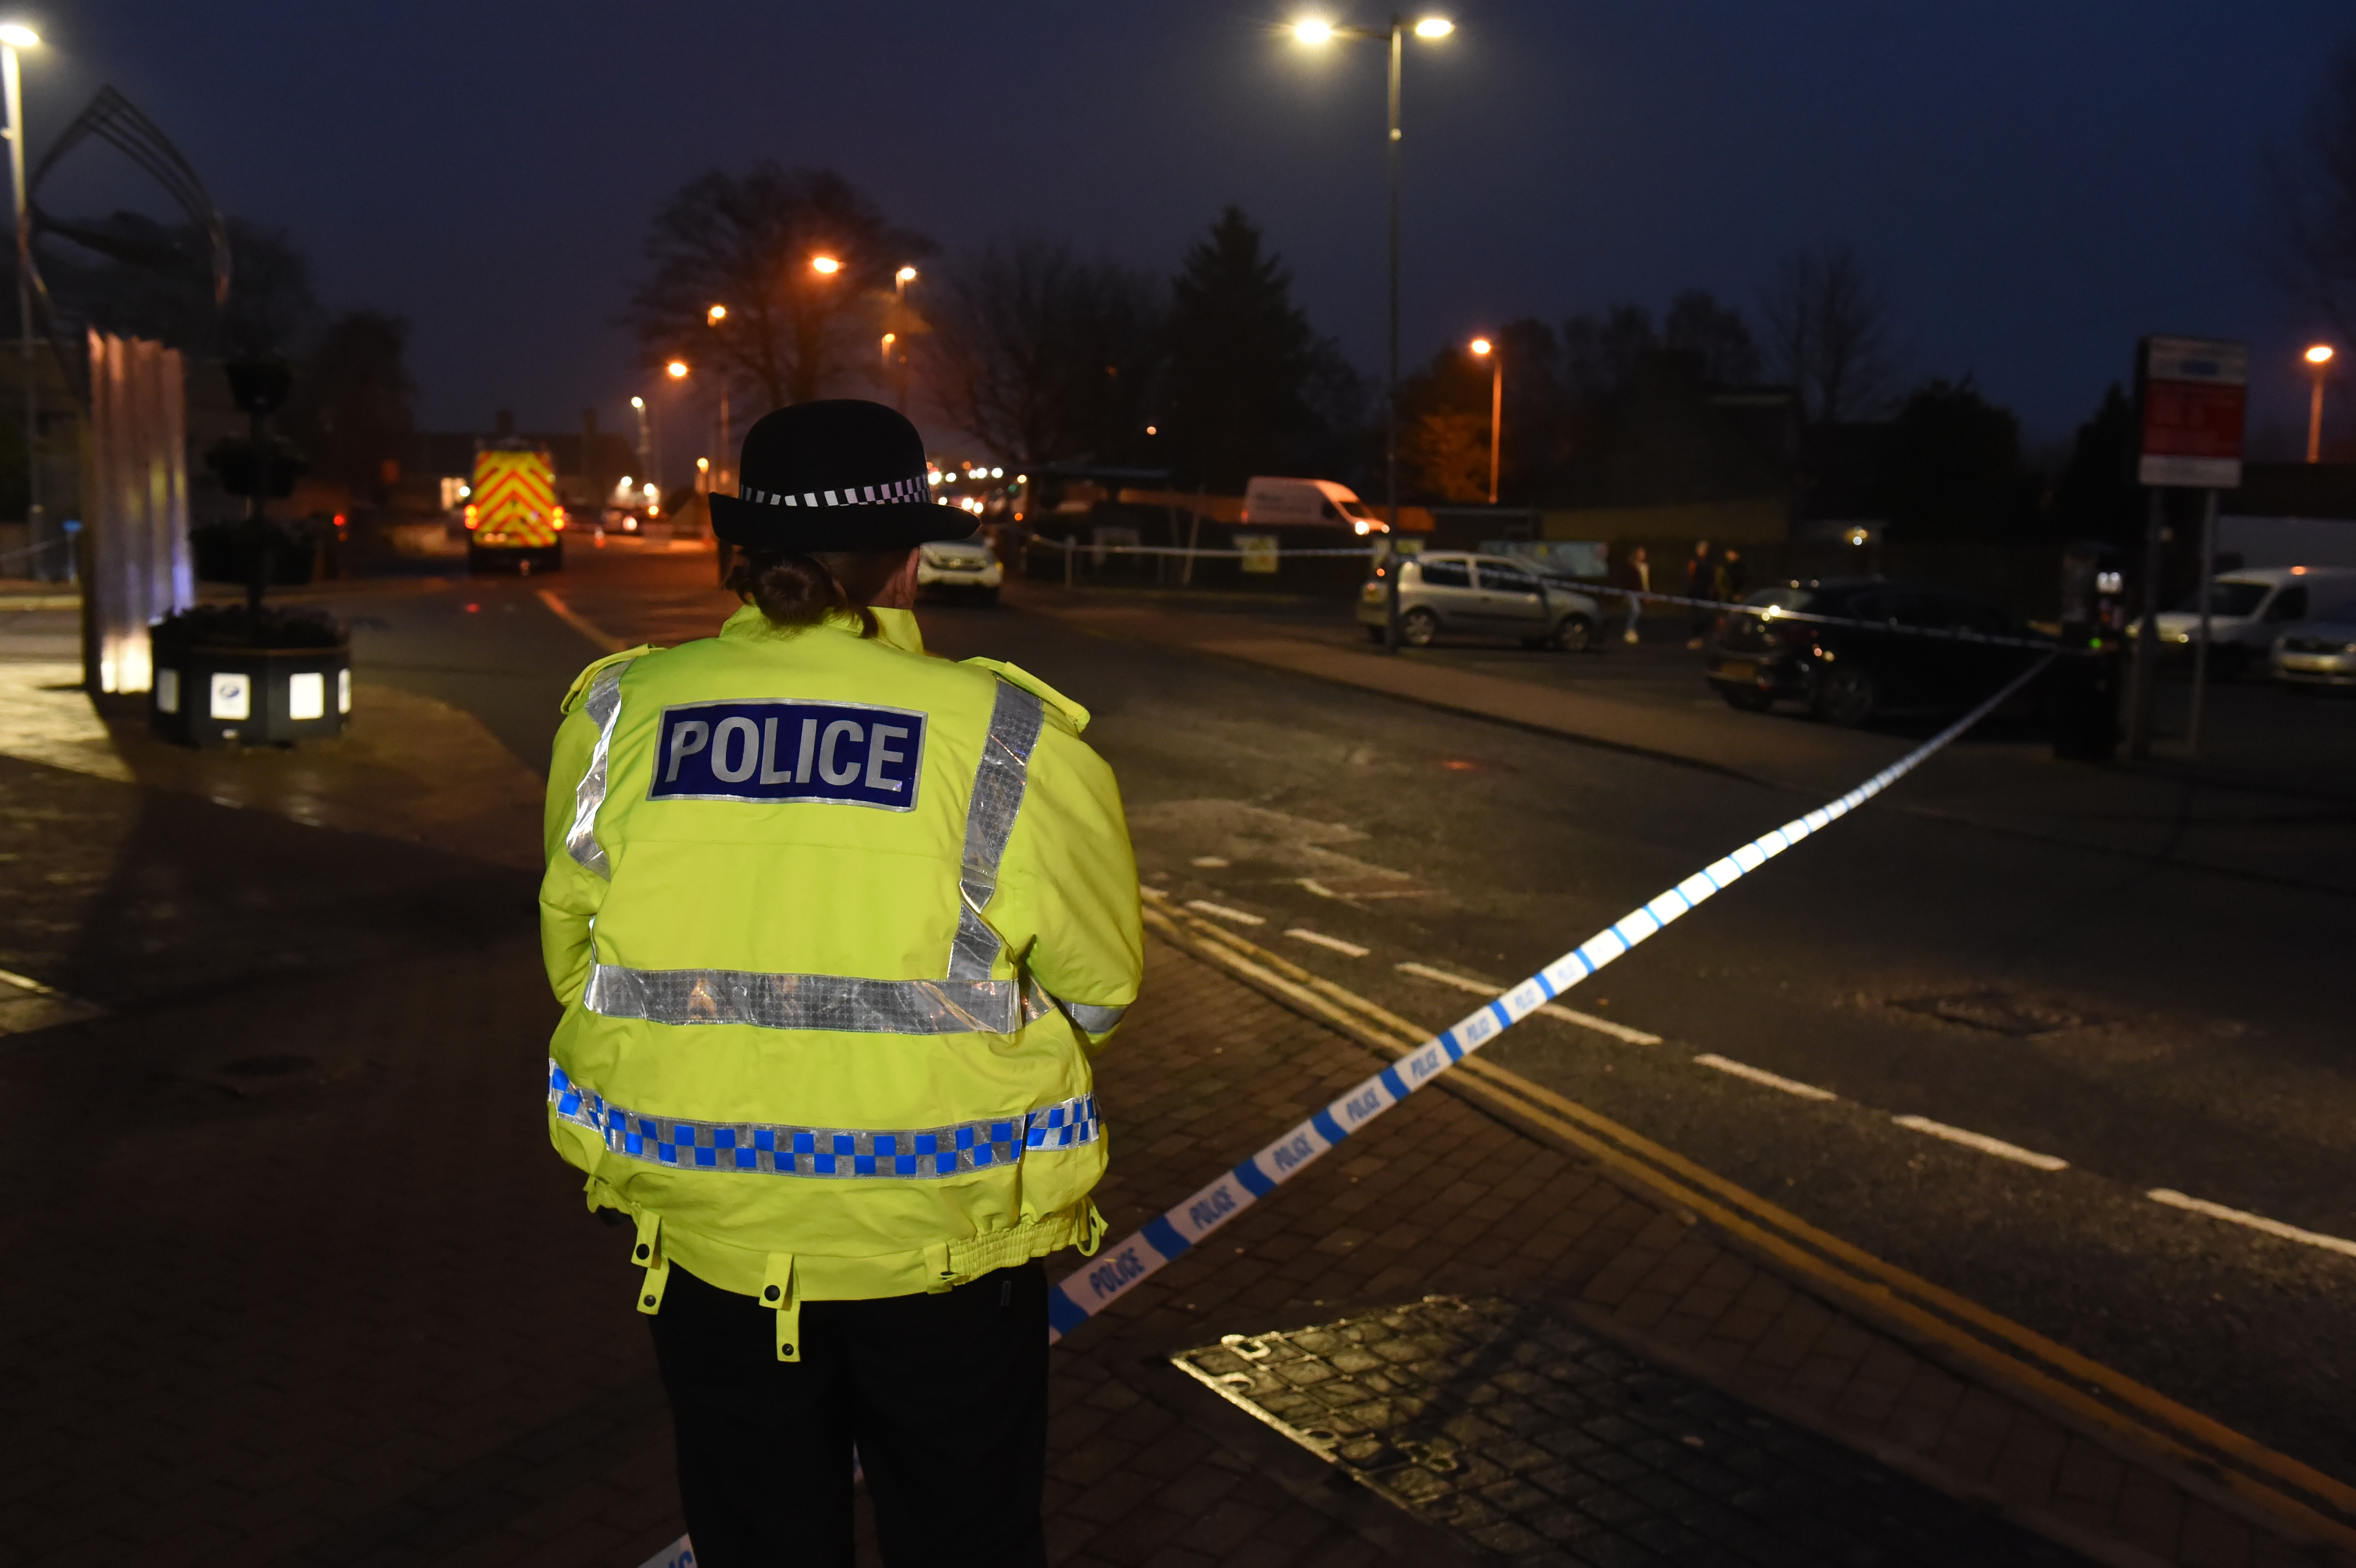 The scene in Inverurie's Burn Lane where three pedestrians were knocked down by a car.